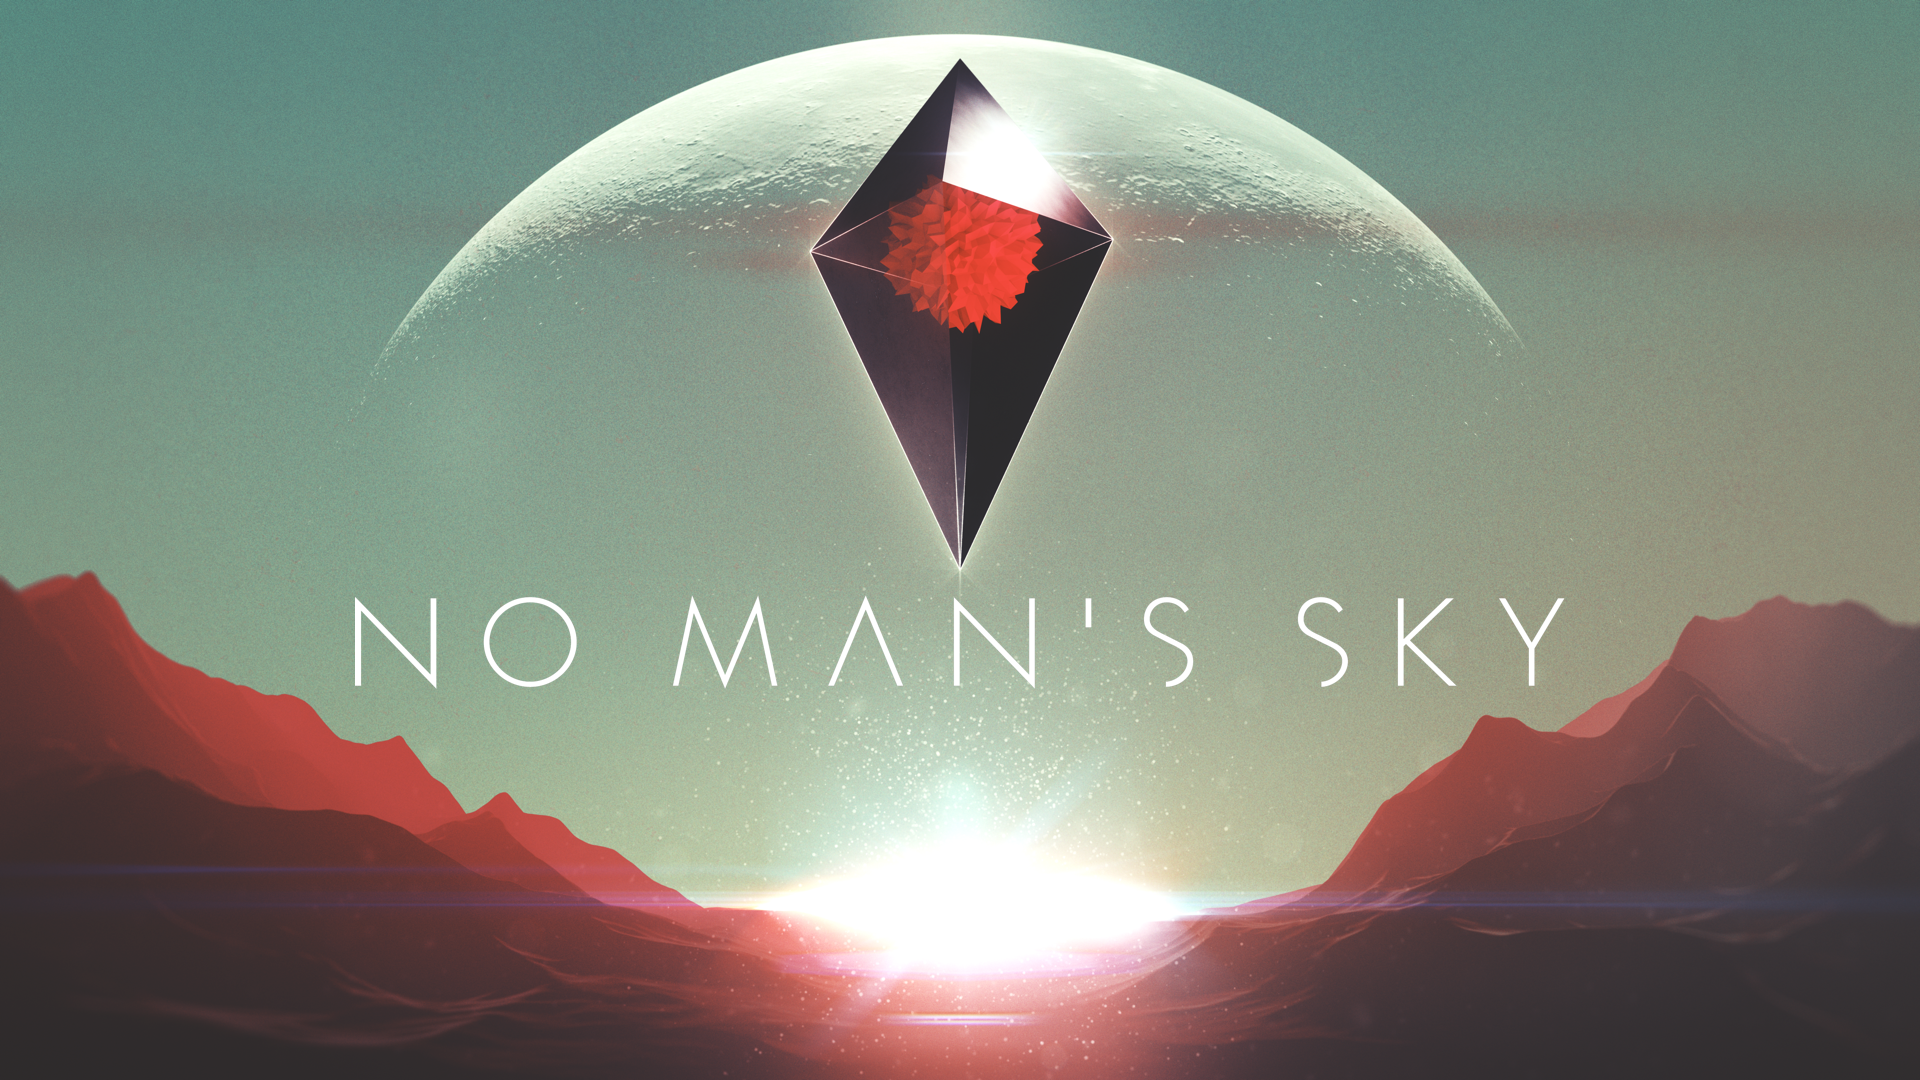 Artistry in Games no_mans_sky_logo No Man's Sky: Looking Deeper At One Of E3's Biggest Hits Features